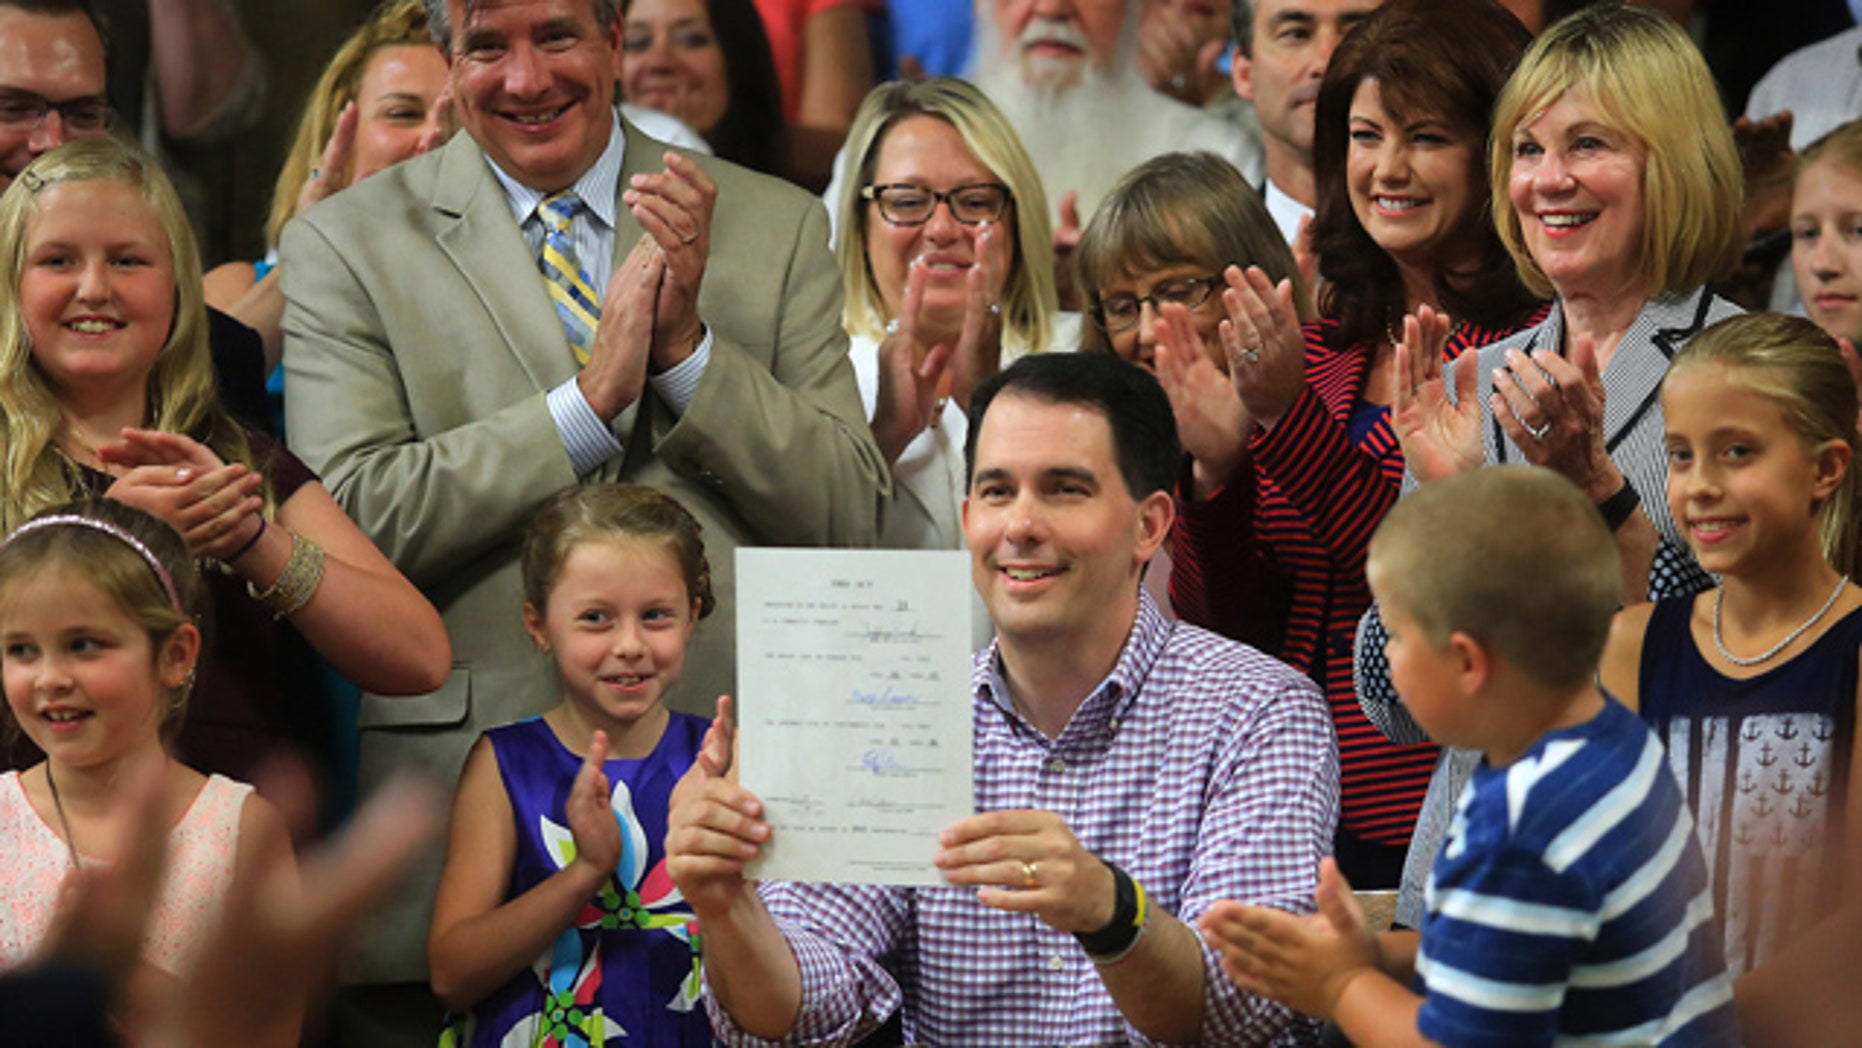 July 12, 2015: Wisconsin Governor Scott Walker displays a signed 2015-2017 state budget during a ceremony on the production floor of Valveworks USA in Waukesha, Wis. (John Hart/Wisconsin State Journal via AP)